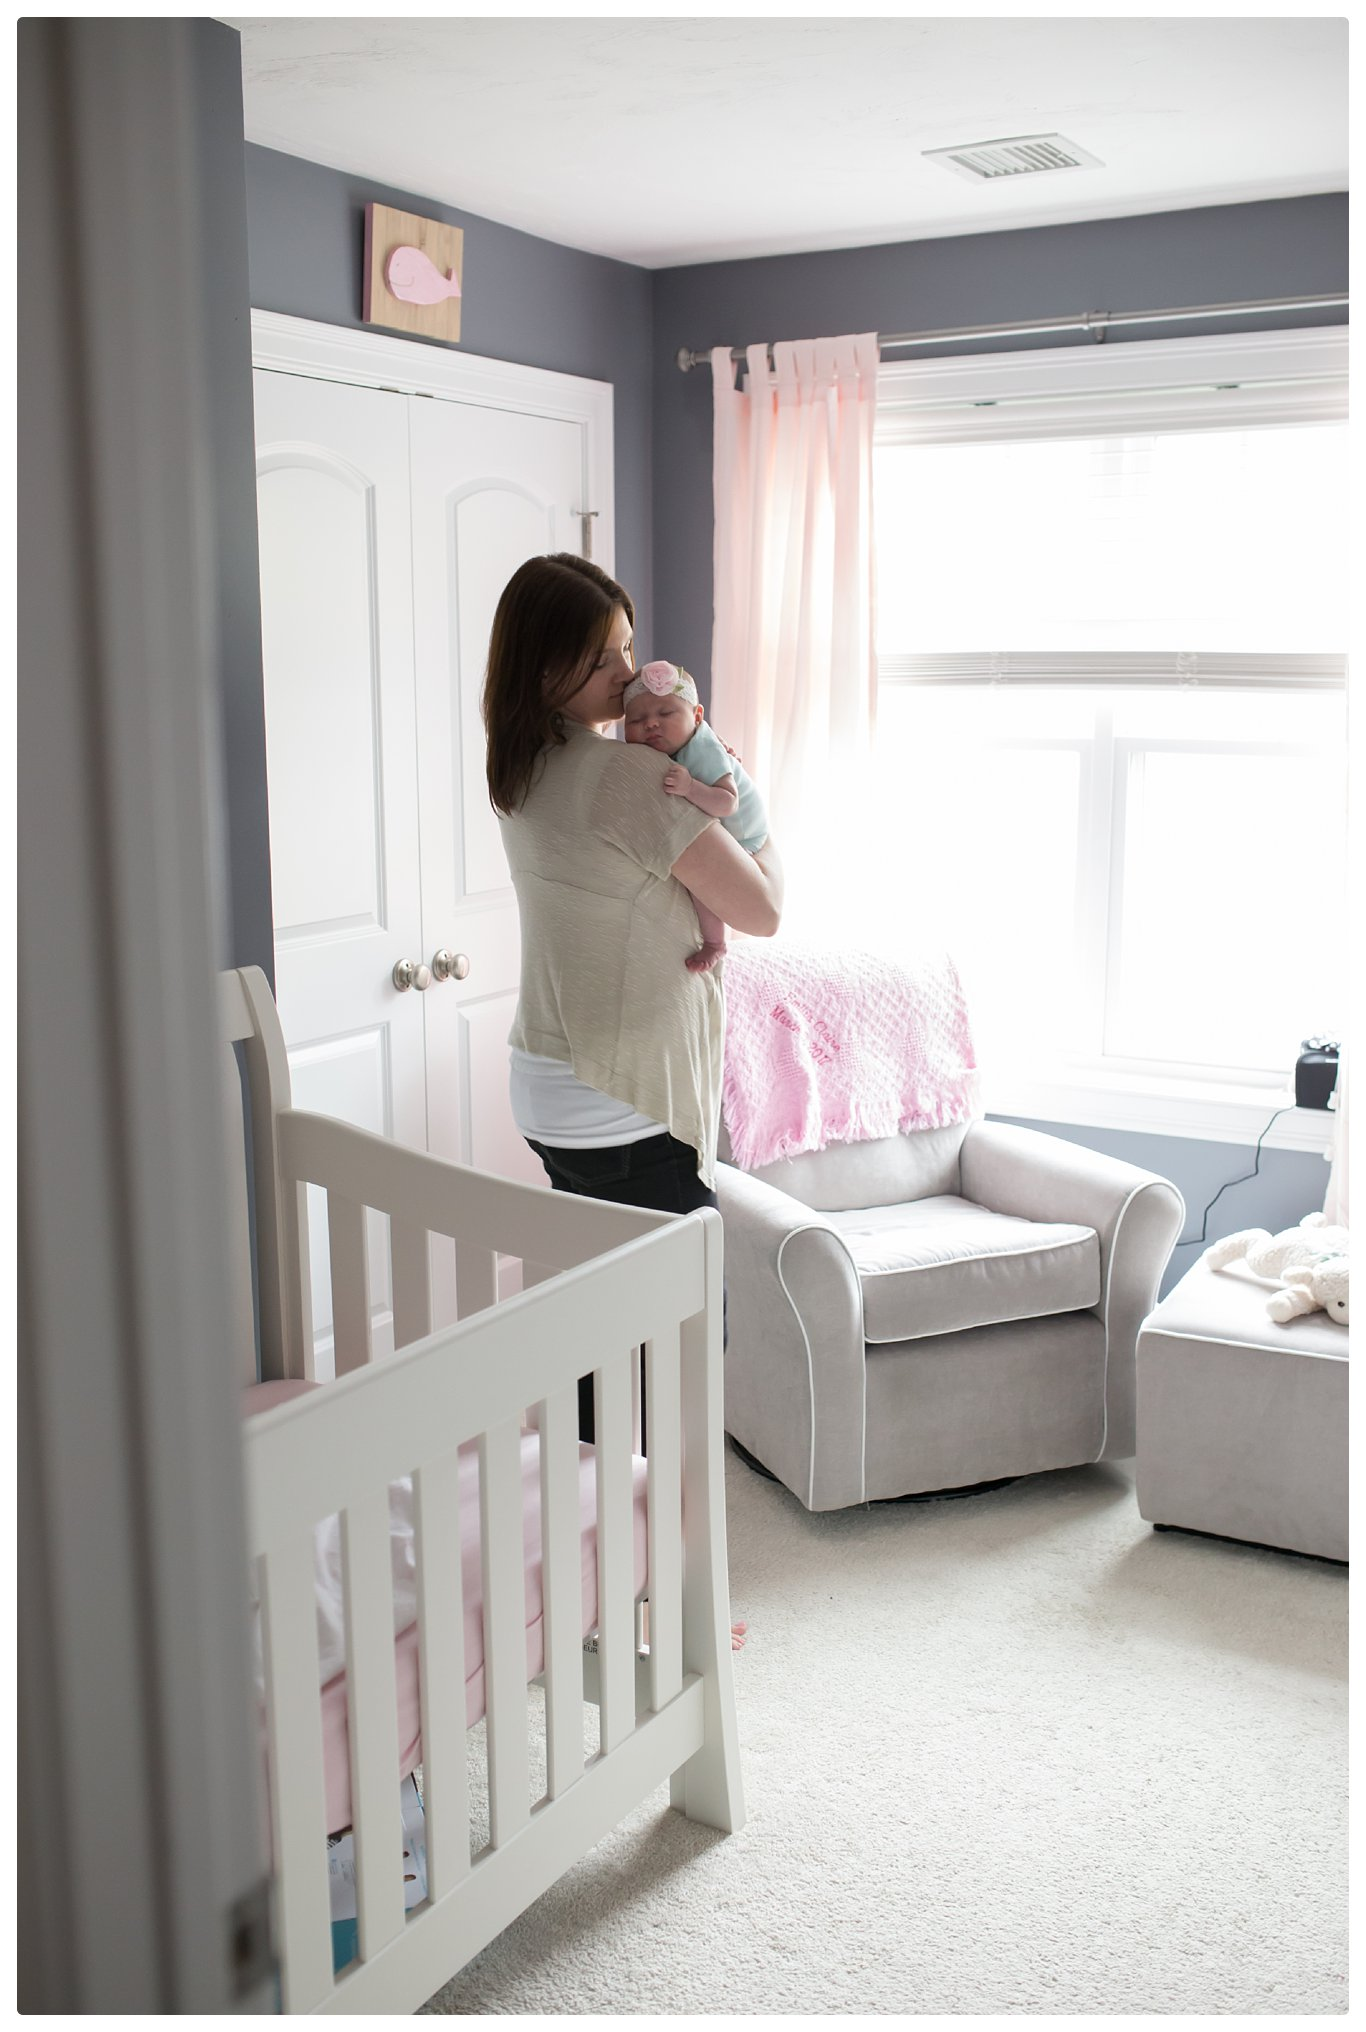 Mom and baby in nursery during Newborn Lifestyle photos in Boston Massachusetts.